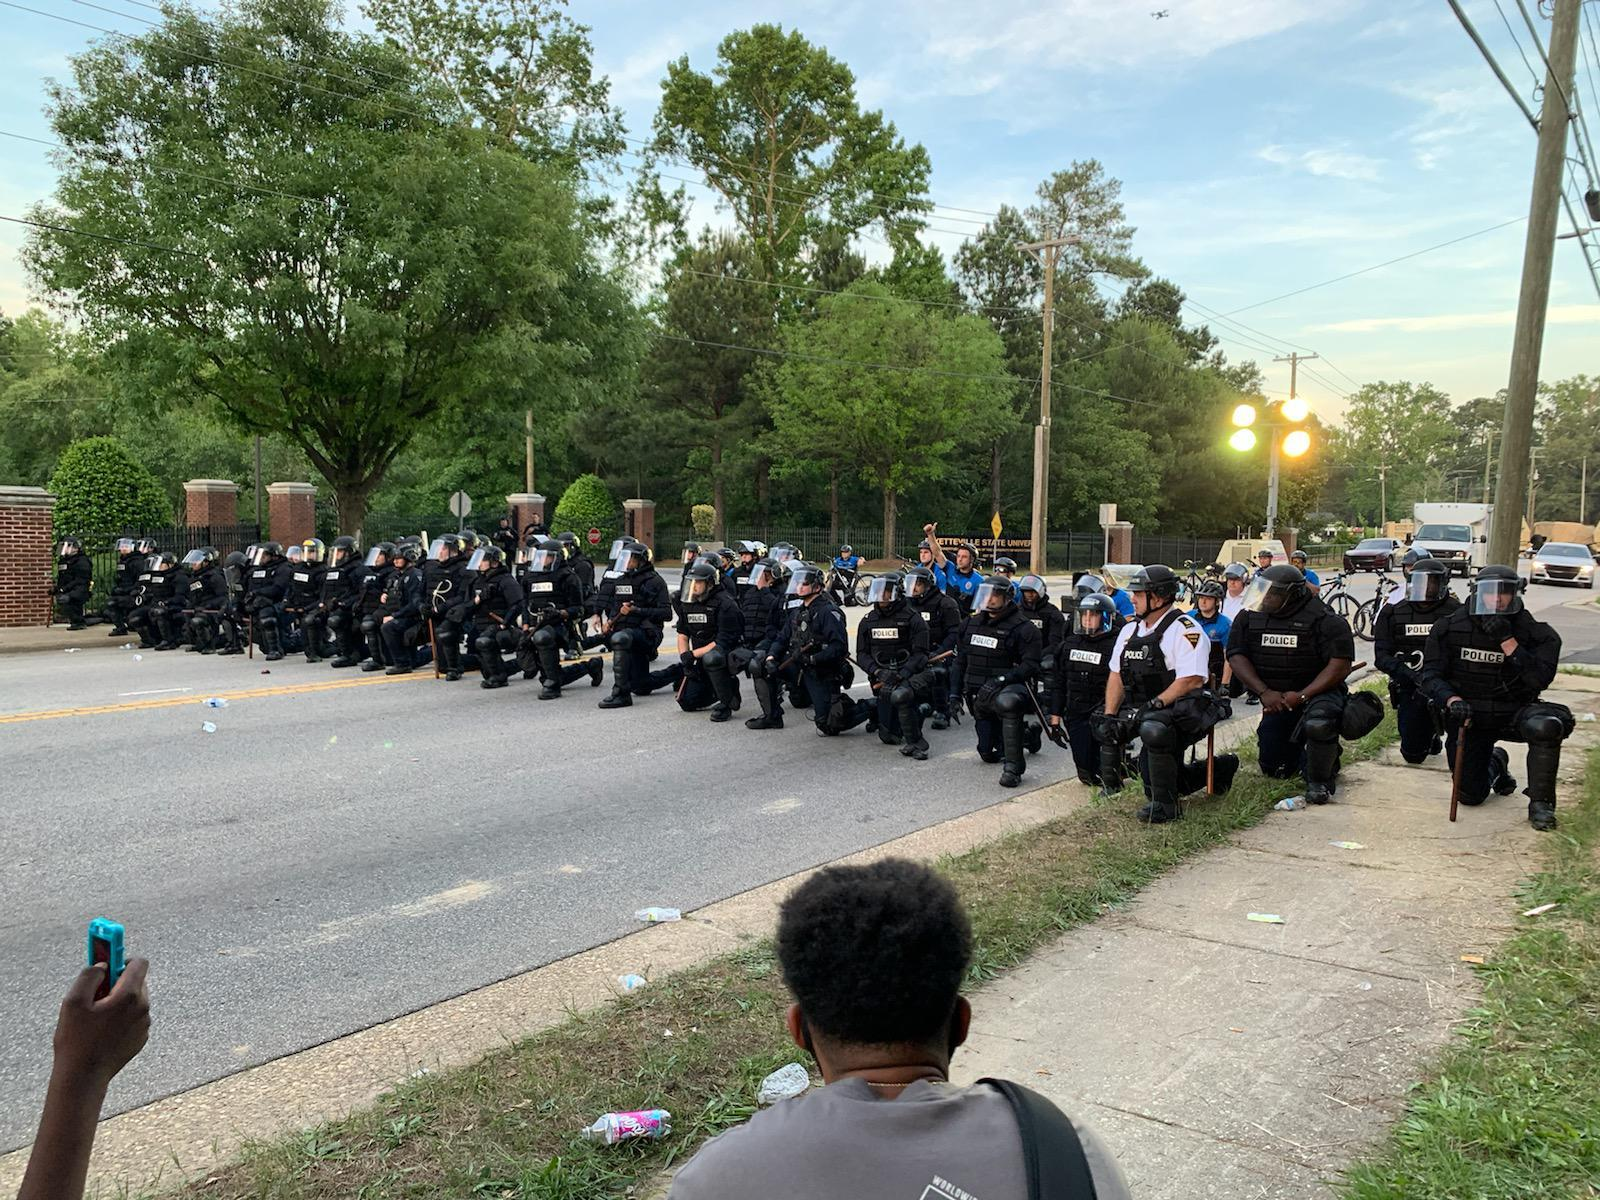 Fayetteville police officers in riot gear take a knee during a protest in Fayetteville on Monday.